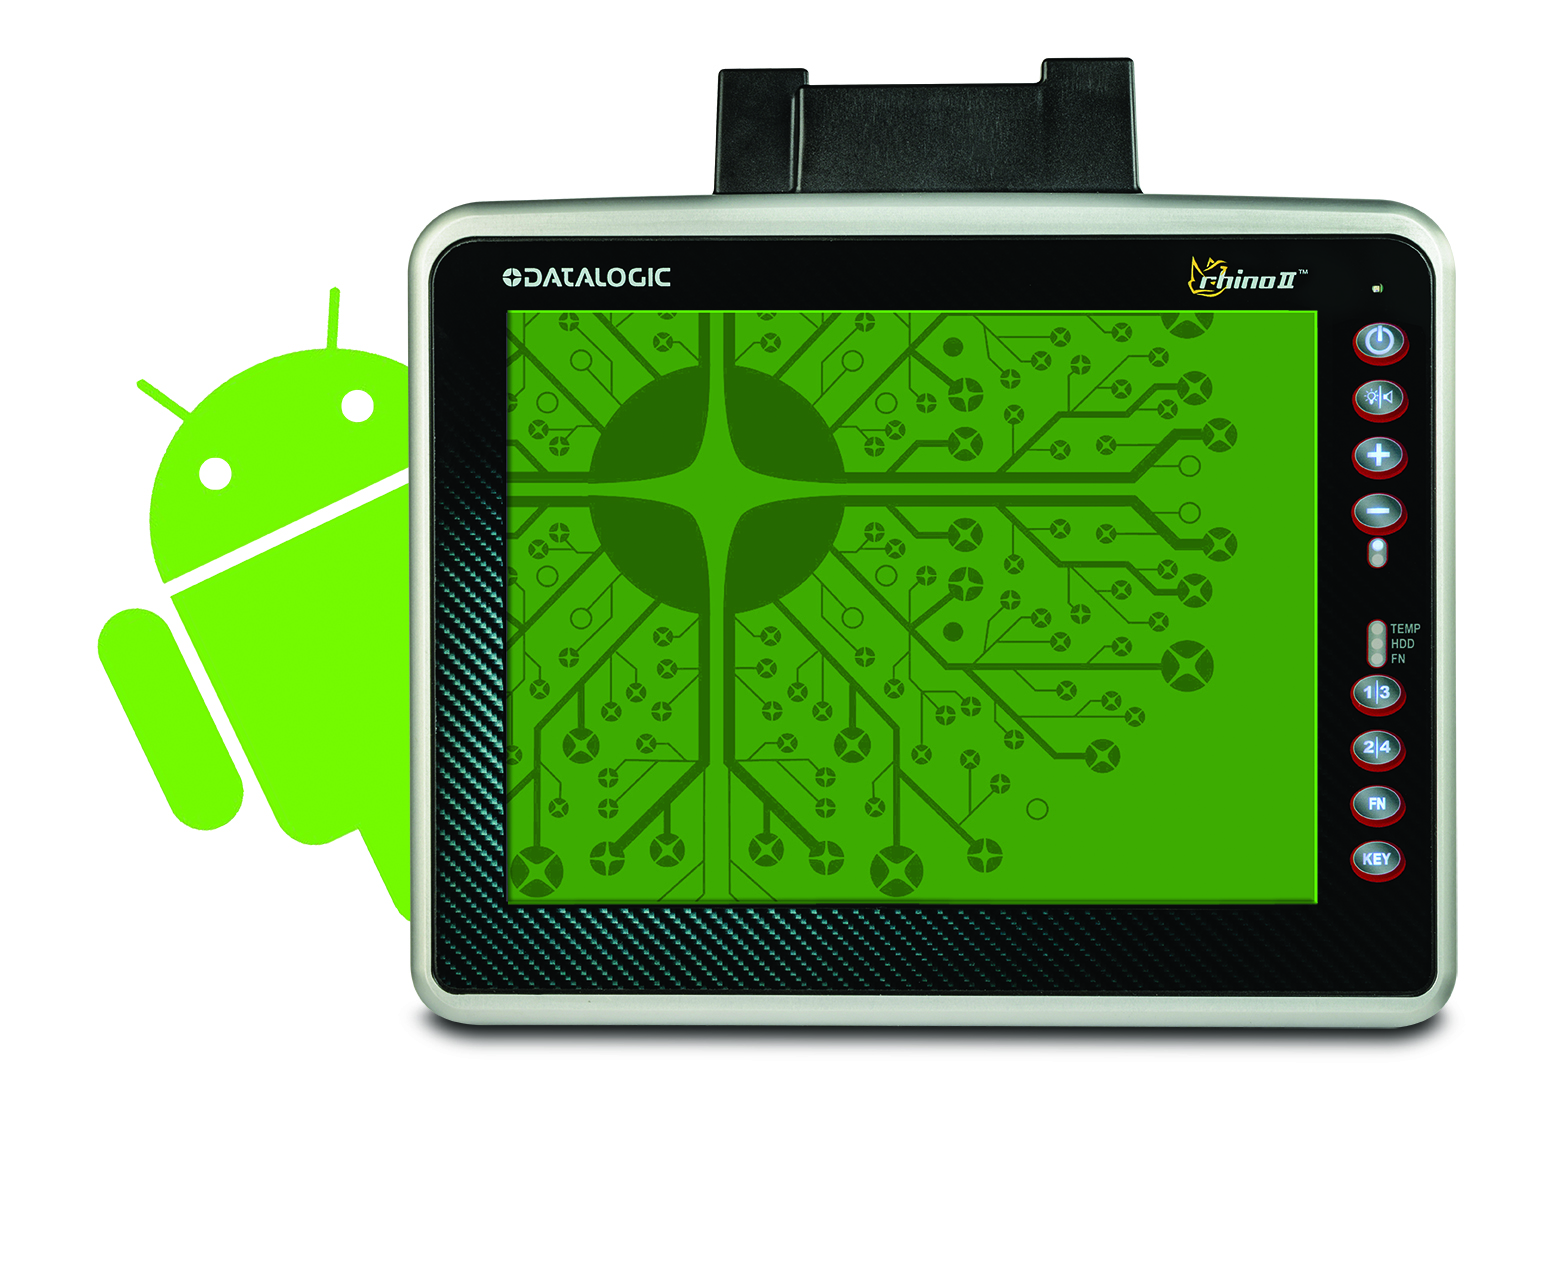 Rhino II with Android